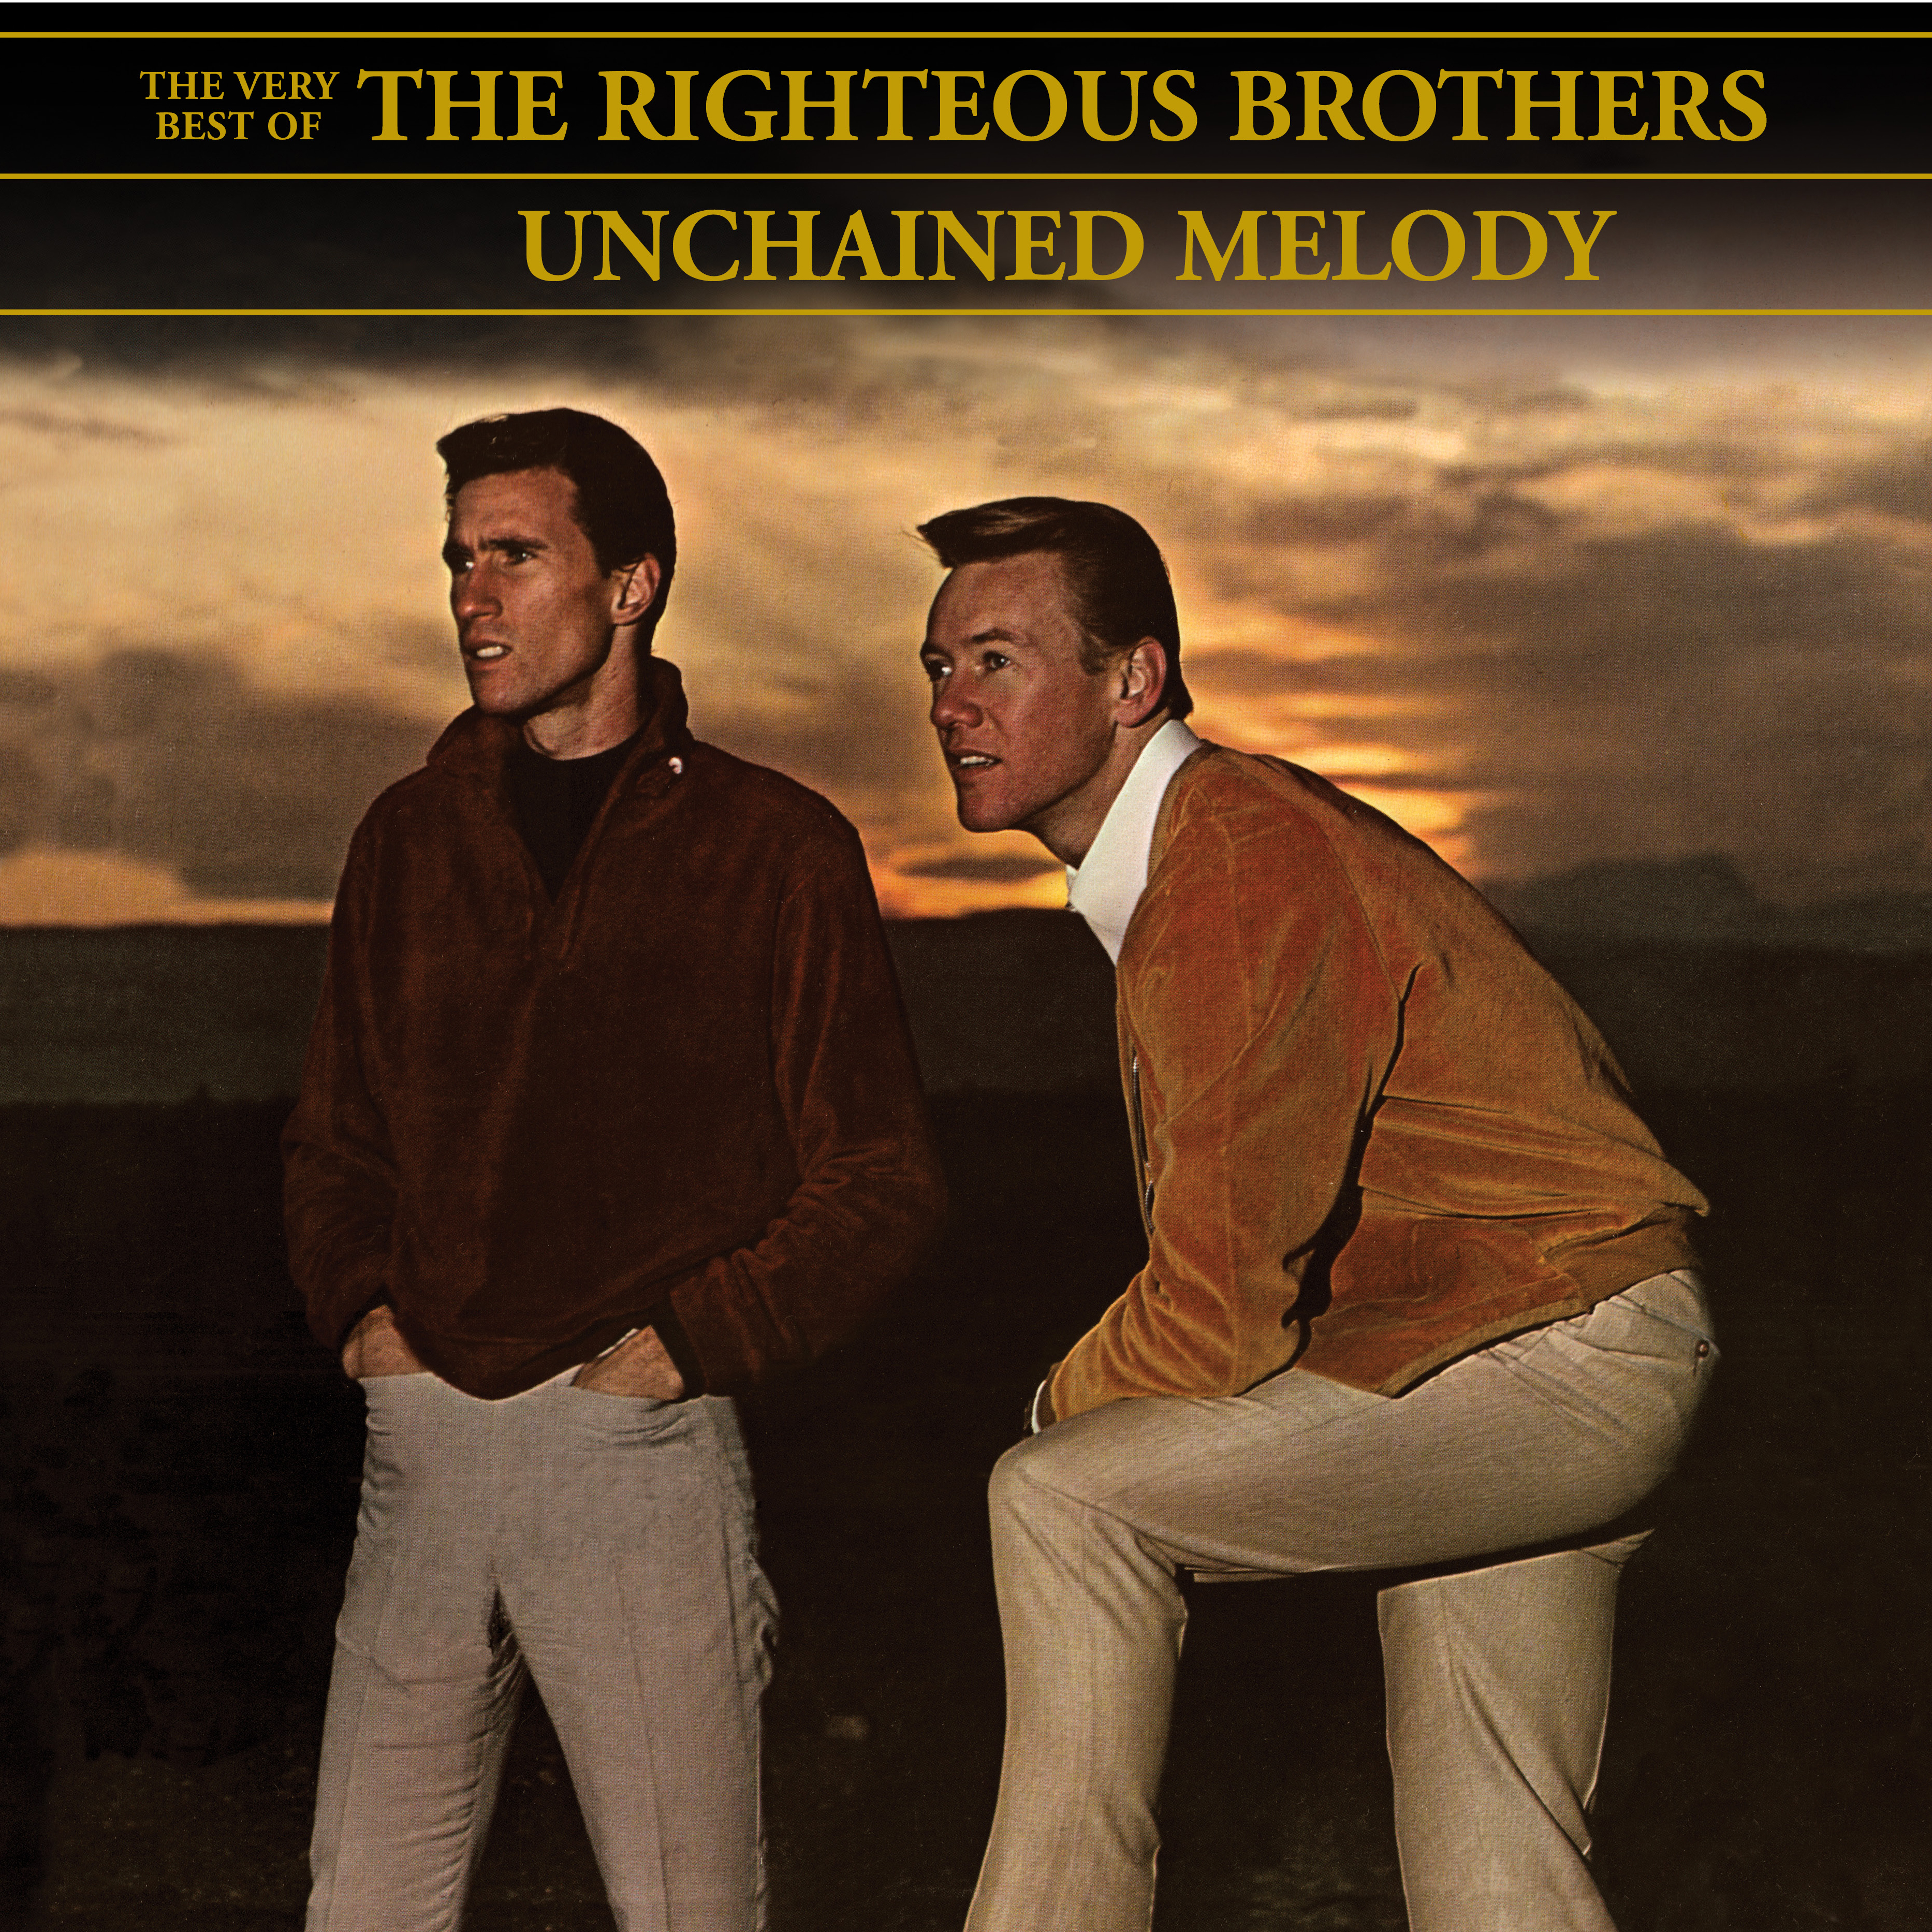 The Righteous Brothers - The Very Best Of The Righteous Brothers - Unchained Melody (180 Gram Audiophile Vinyl/Limited Edition/Gatefold Cover)